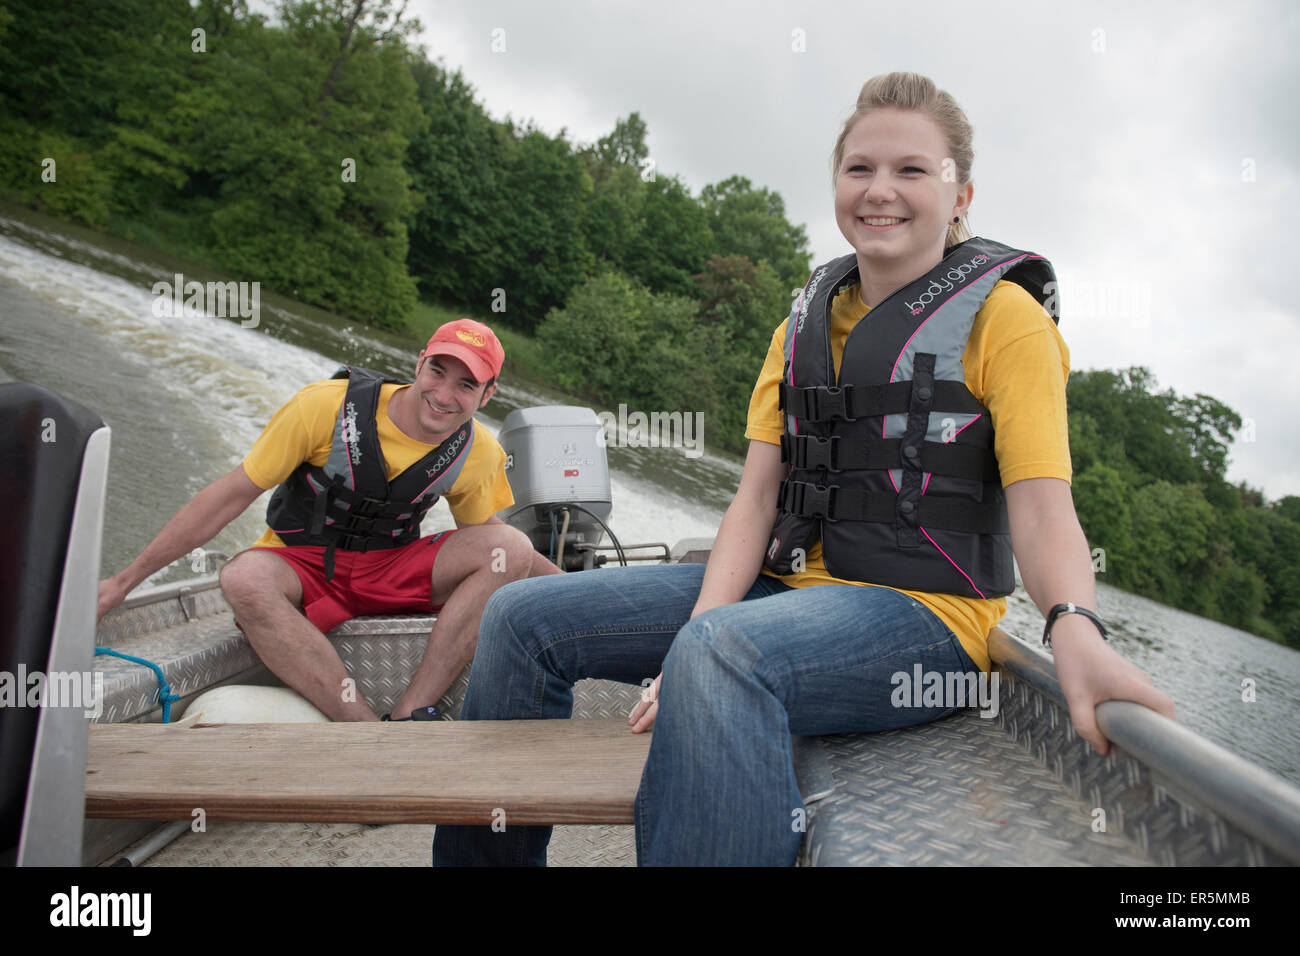 Members of the DLRG practicing rescue situations on a lake, German Life Saving Association, Rainau Buch, Aalen, Stock Photo